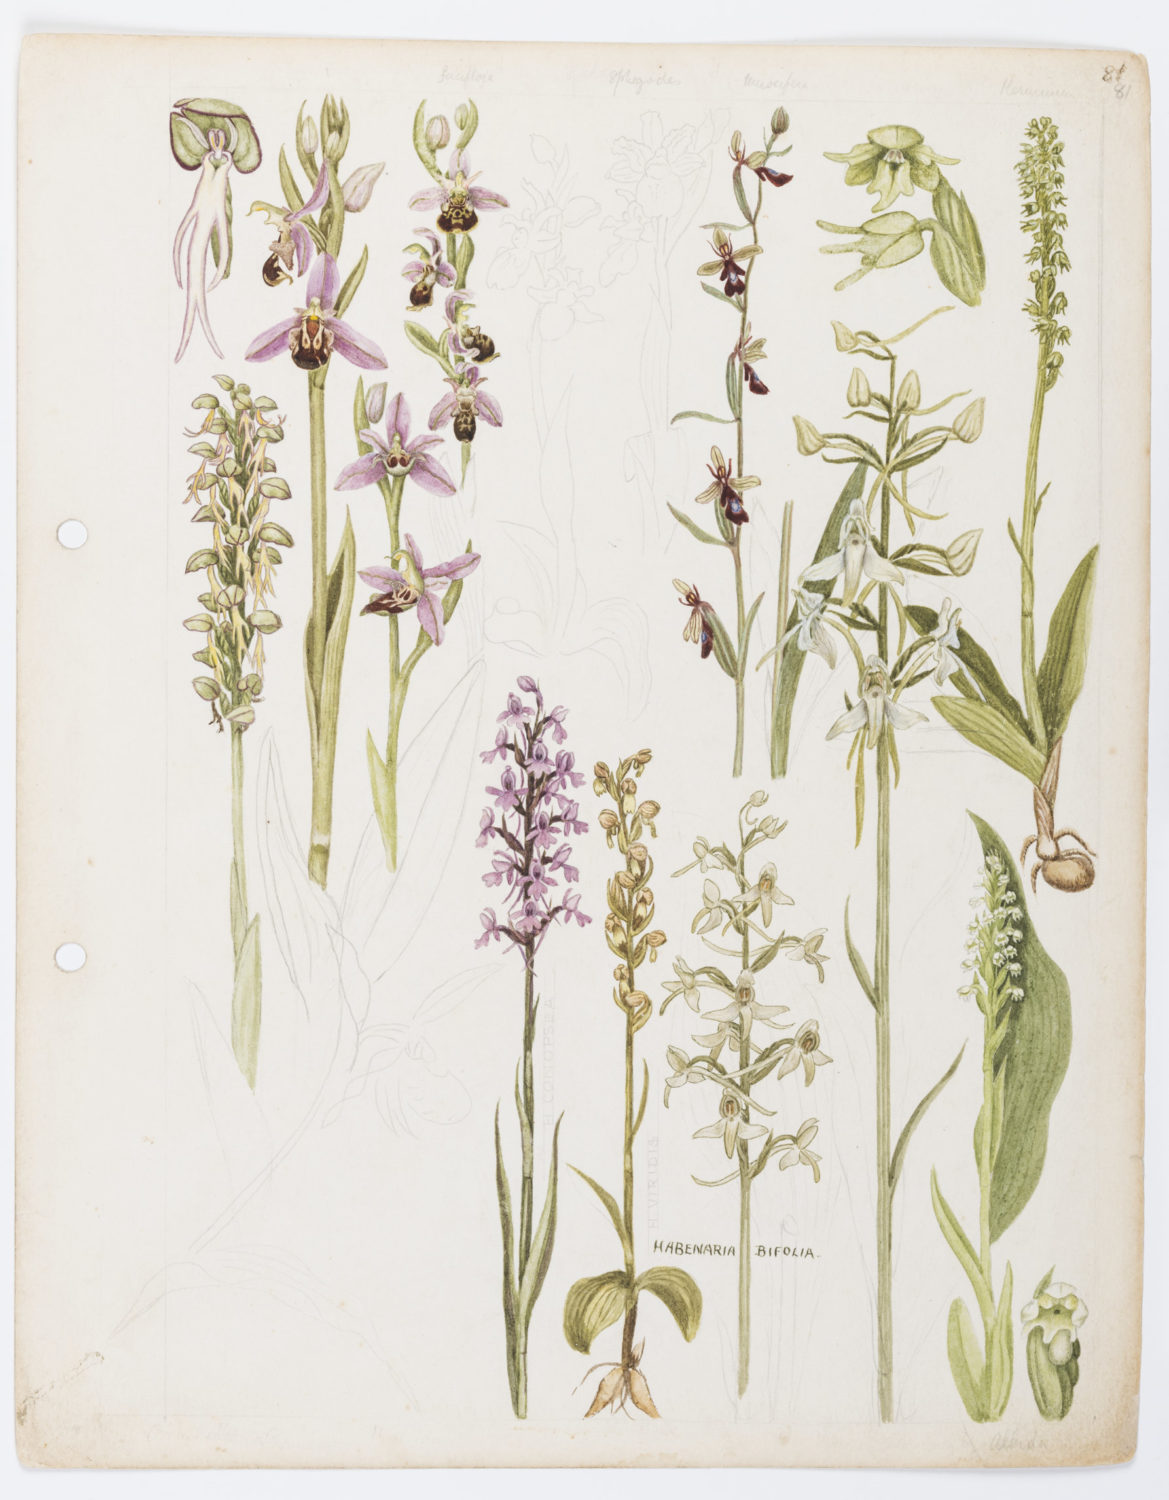 Illustration of Orchidaceae: orchids by Keble Martin